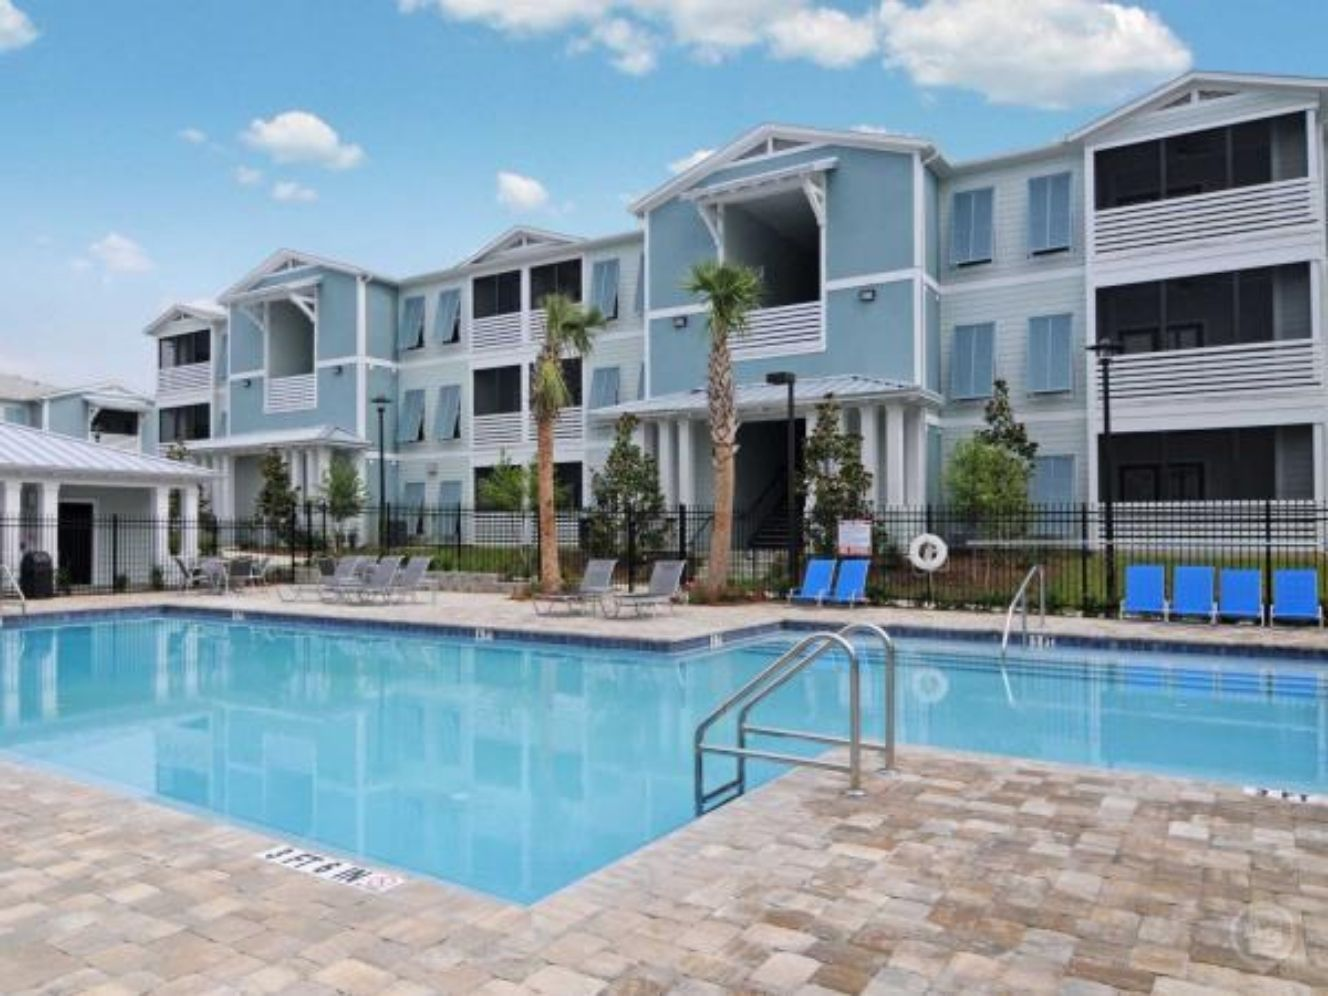 Pin On Multifamily Property Management News Tips Ideas Jobs